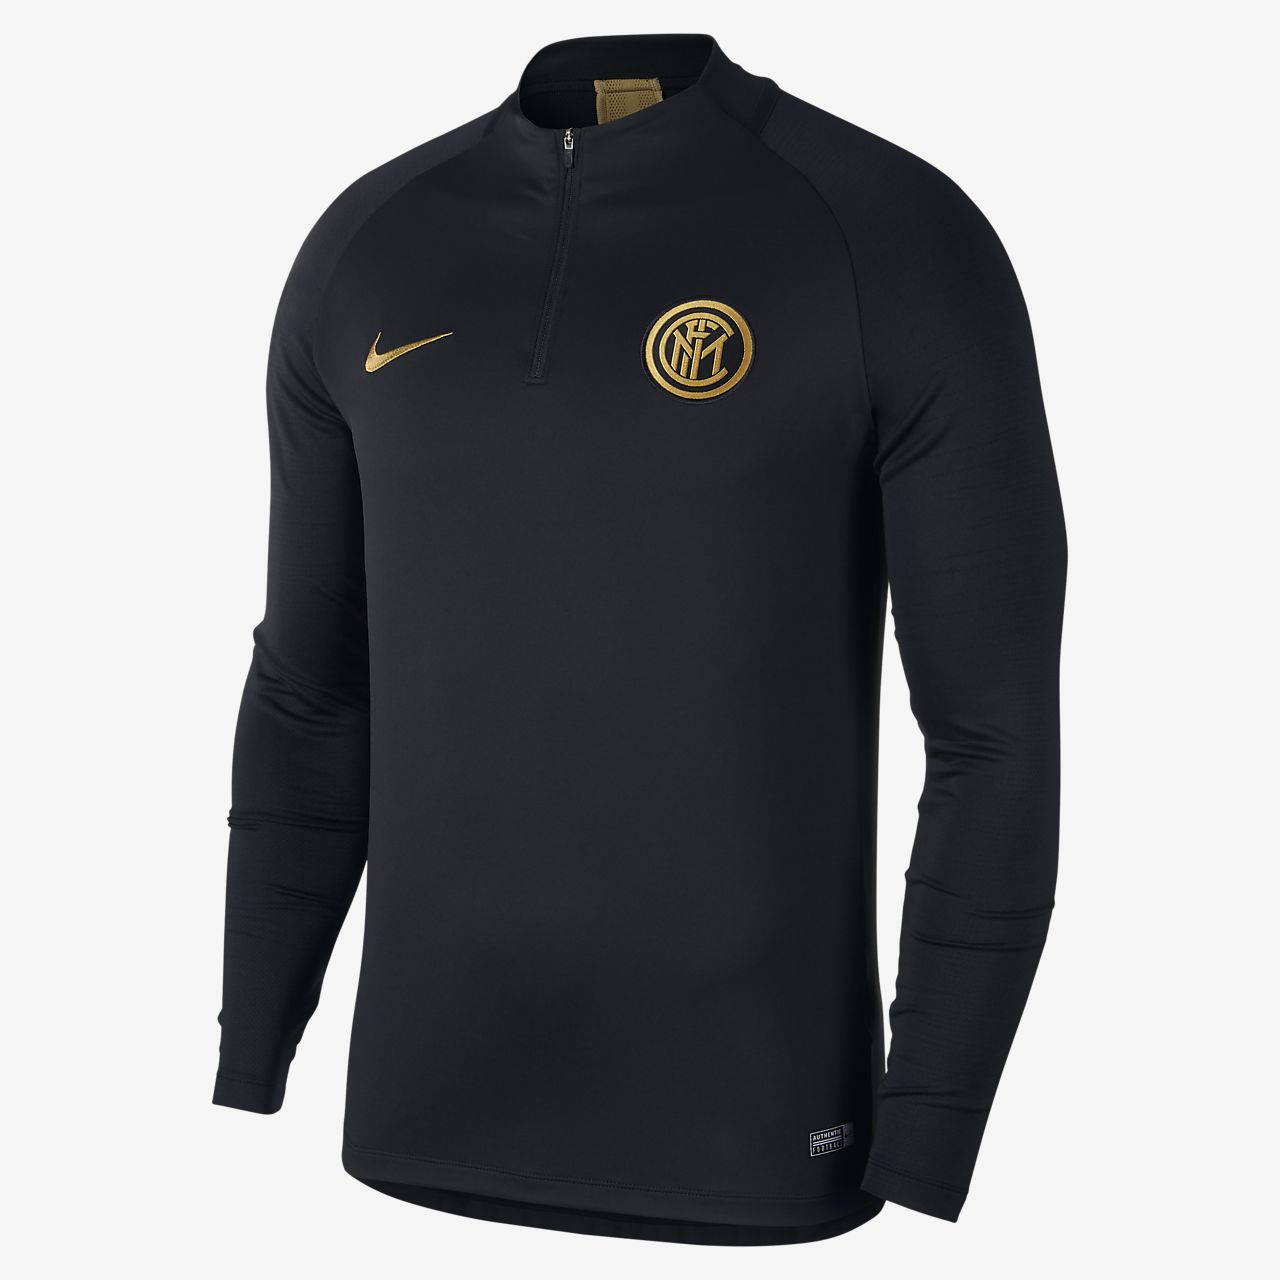 Nike Dri-FIT Inter Milan Strike Men's Football Drill Top